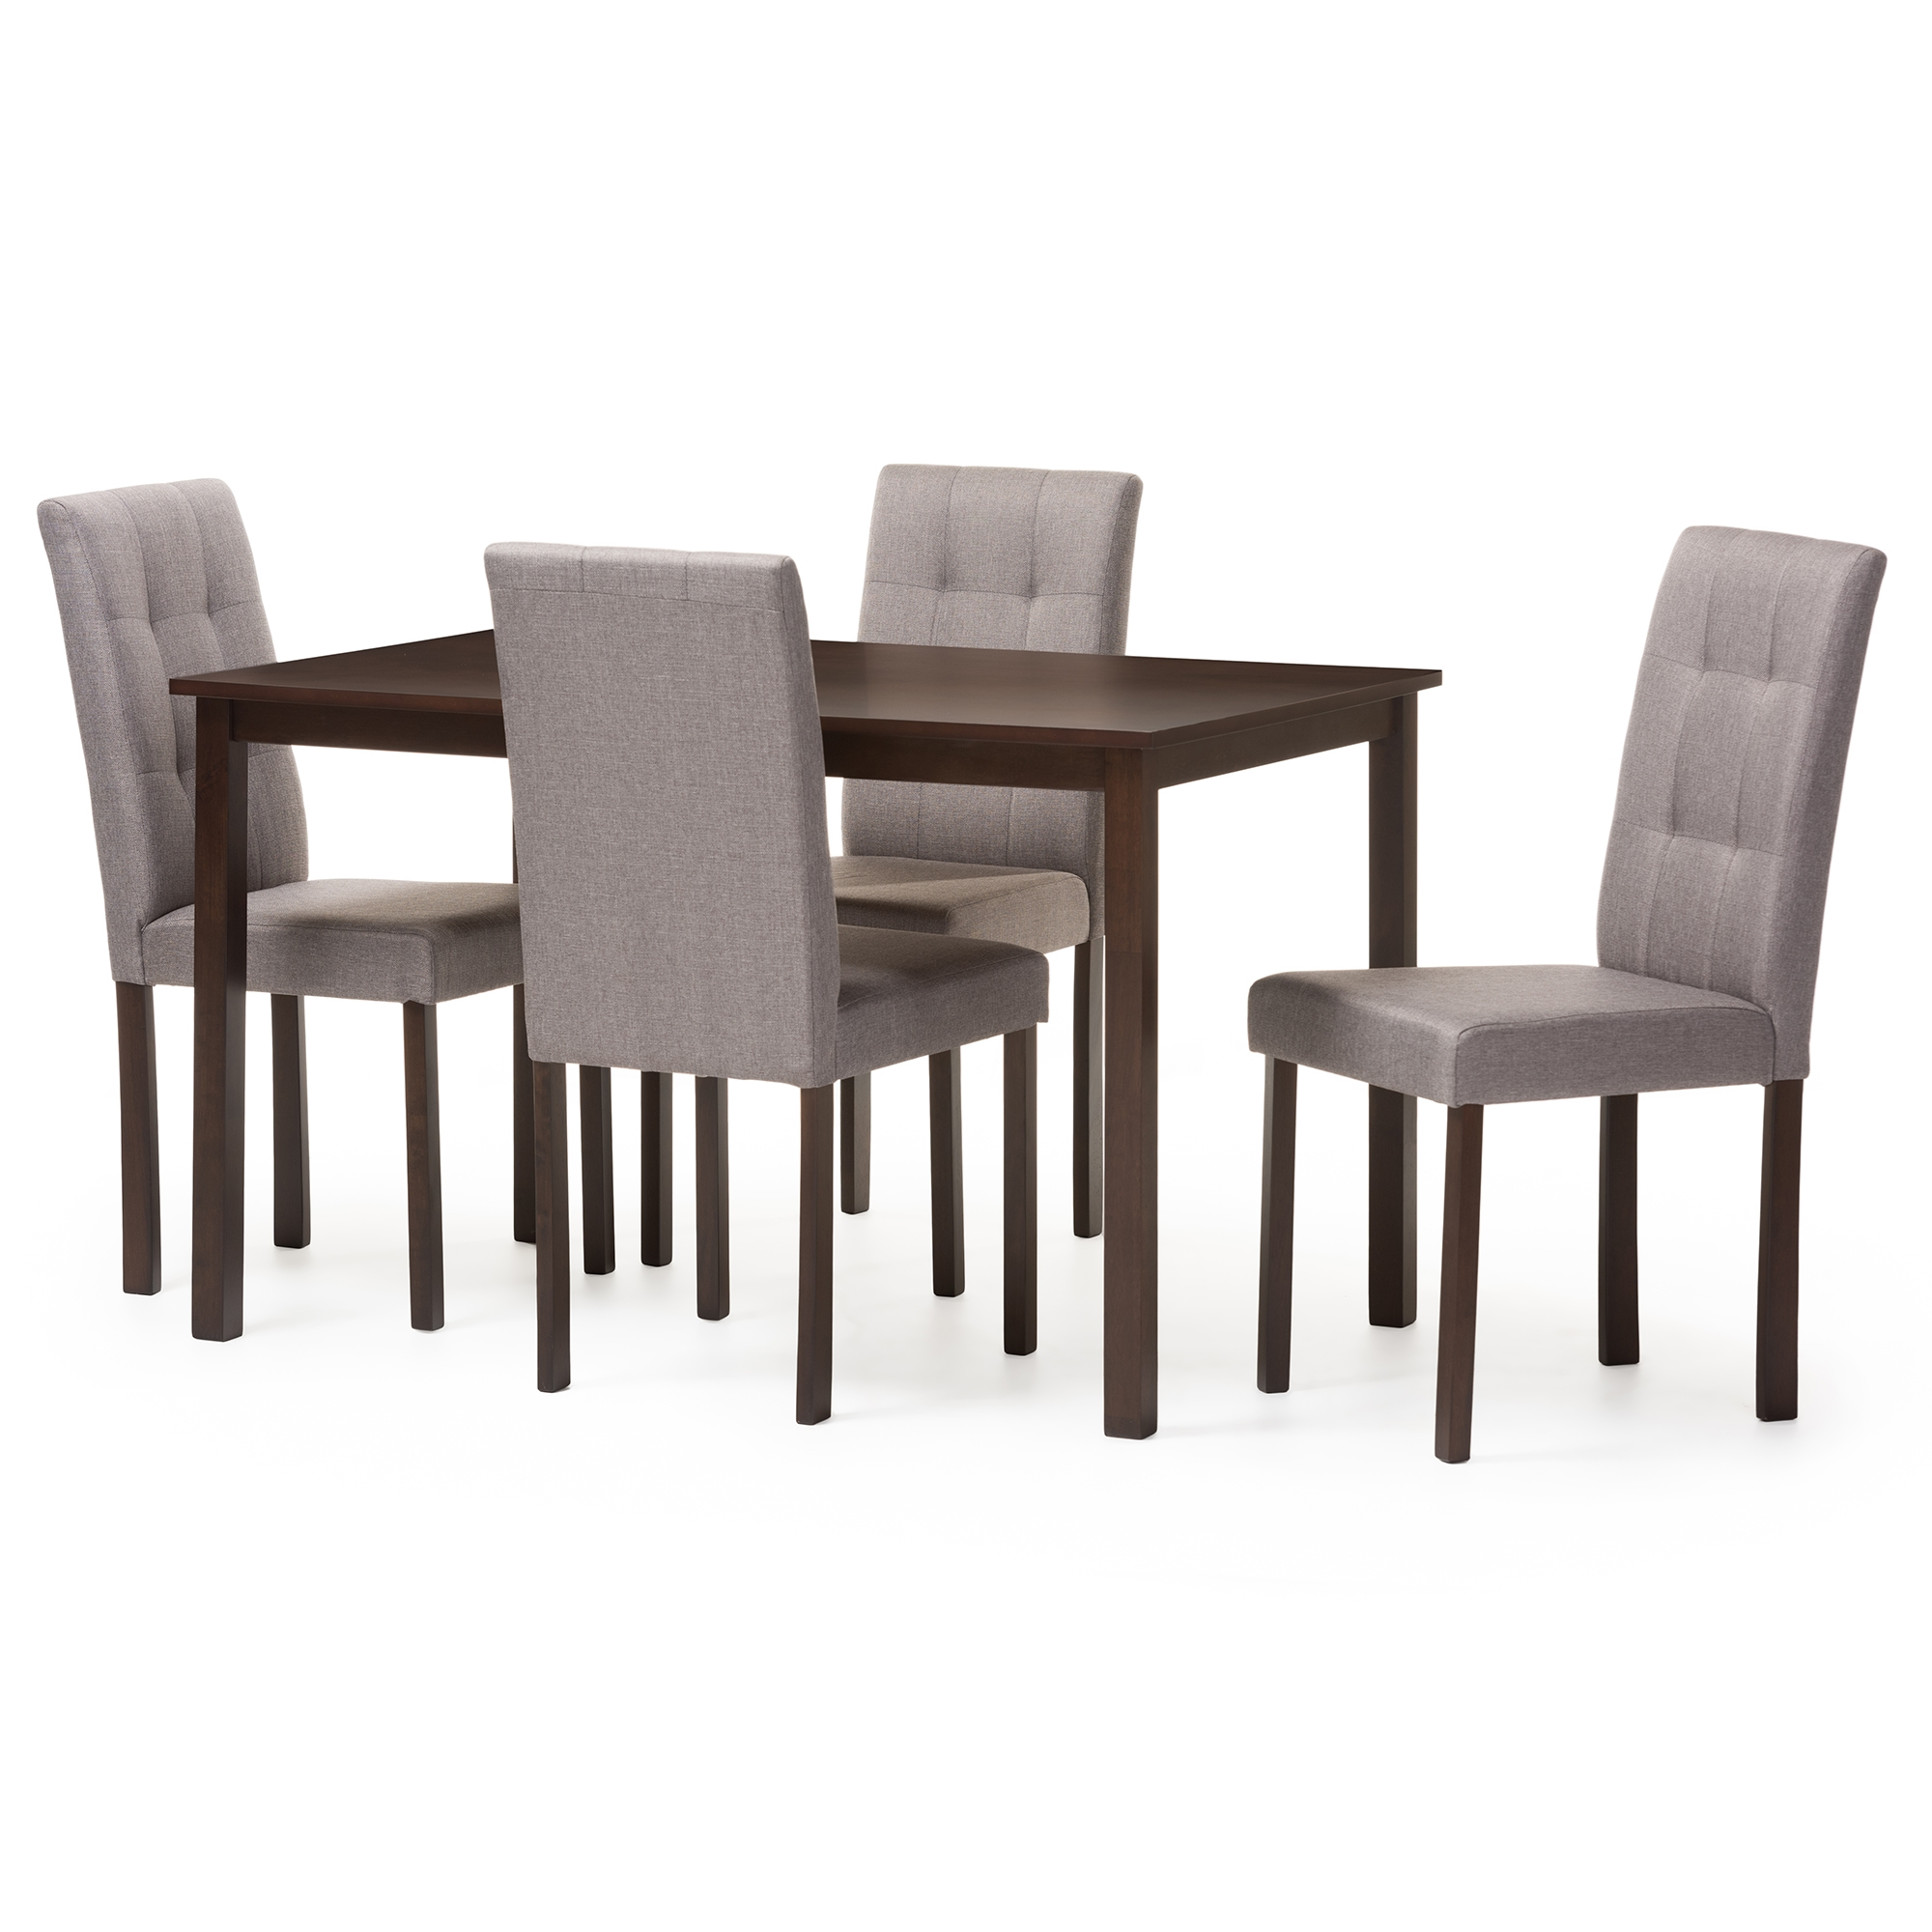 Baxton Studio Andrew Modern And Contemporary 5 Piece Grey Fabric  Upholstered Grid Tufting Dining Set